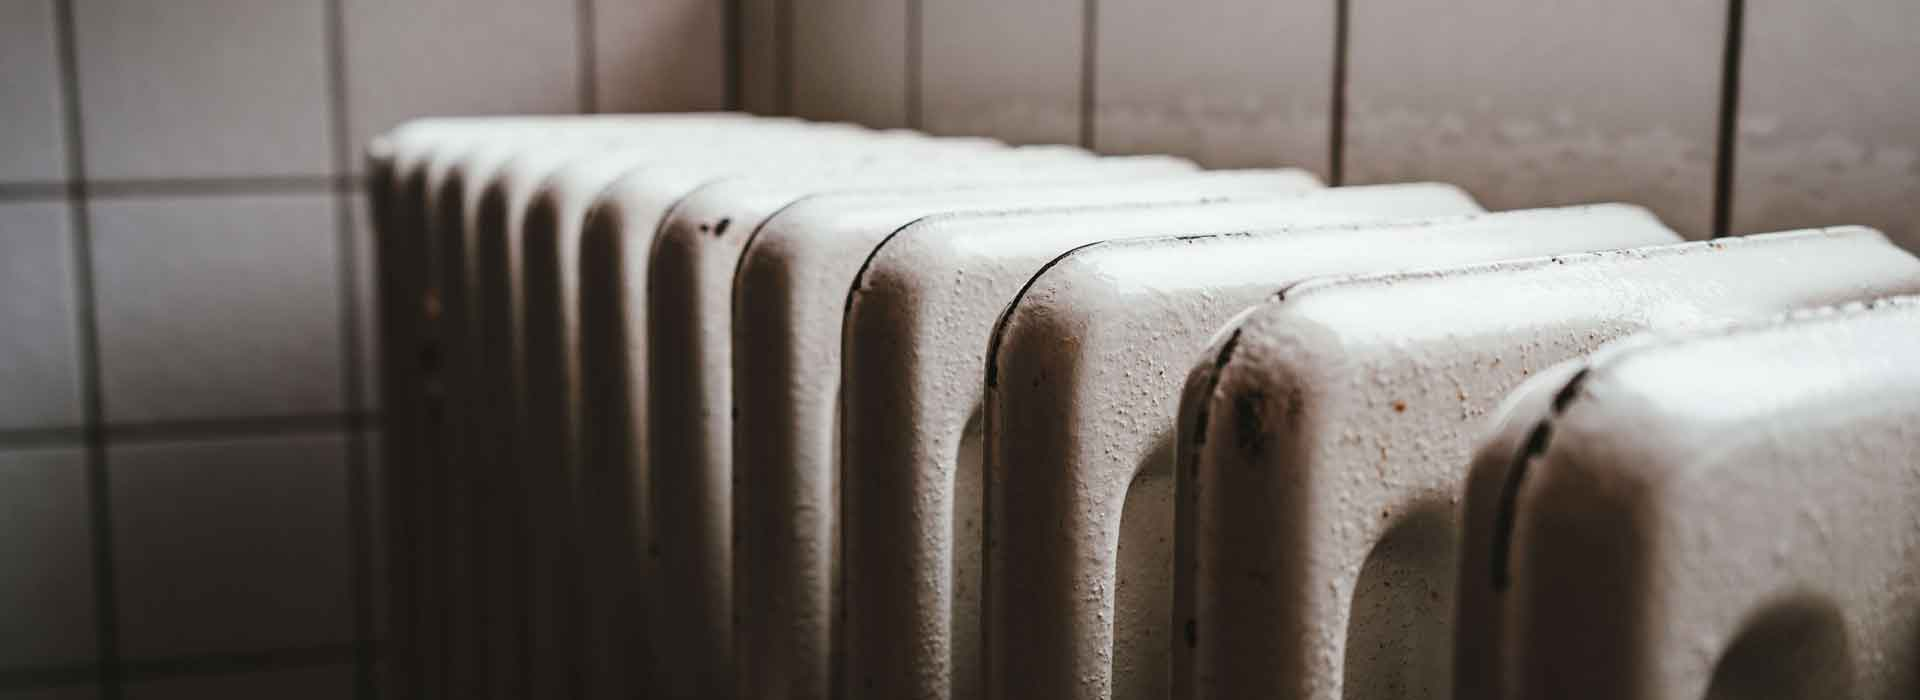 boiler and heating services business coaching image of radiator